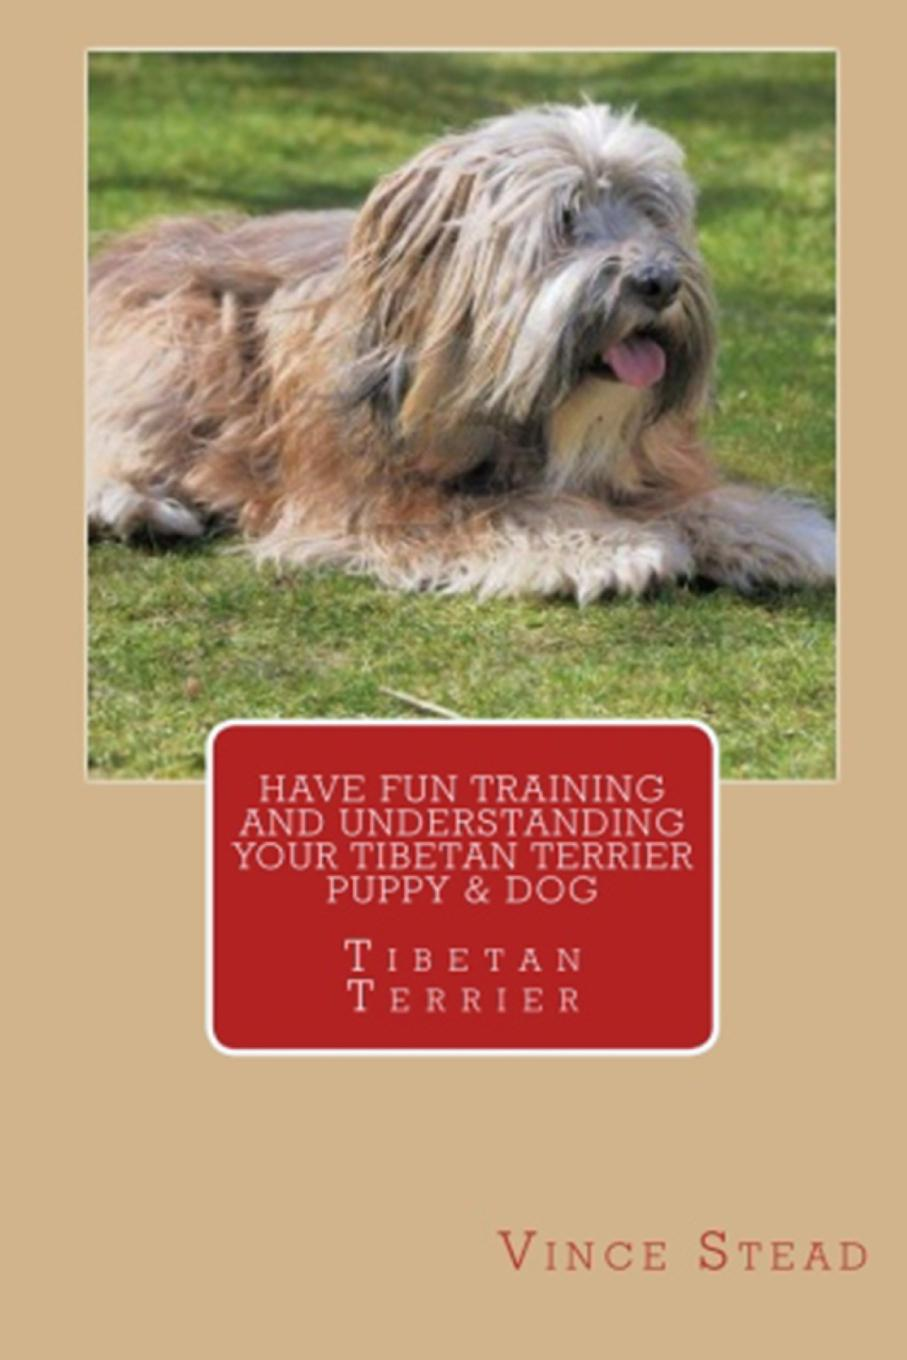 Vince Stead Have Fun Training and Understanding Your Tibetan Terrier Puppy . Dog vince stead old english sheepdog puppy dog understanding and training